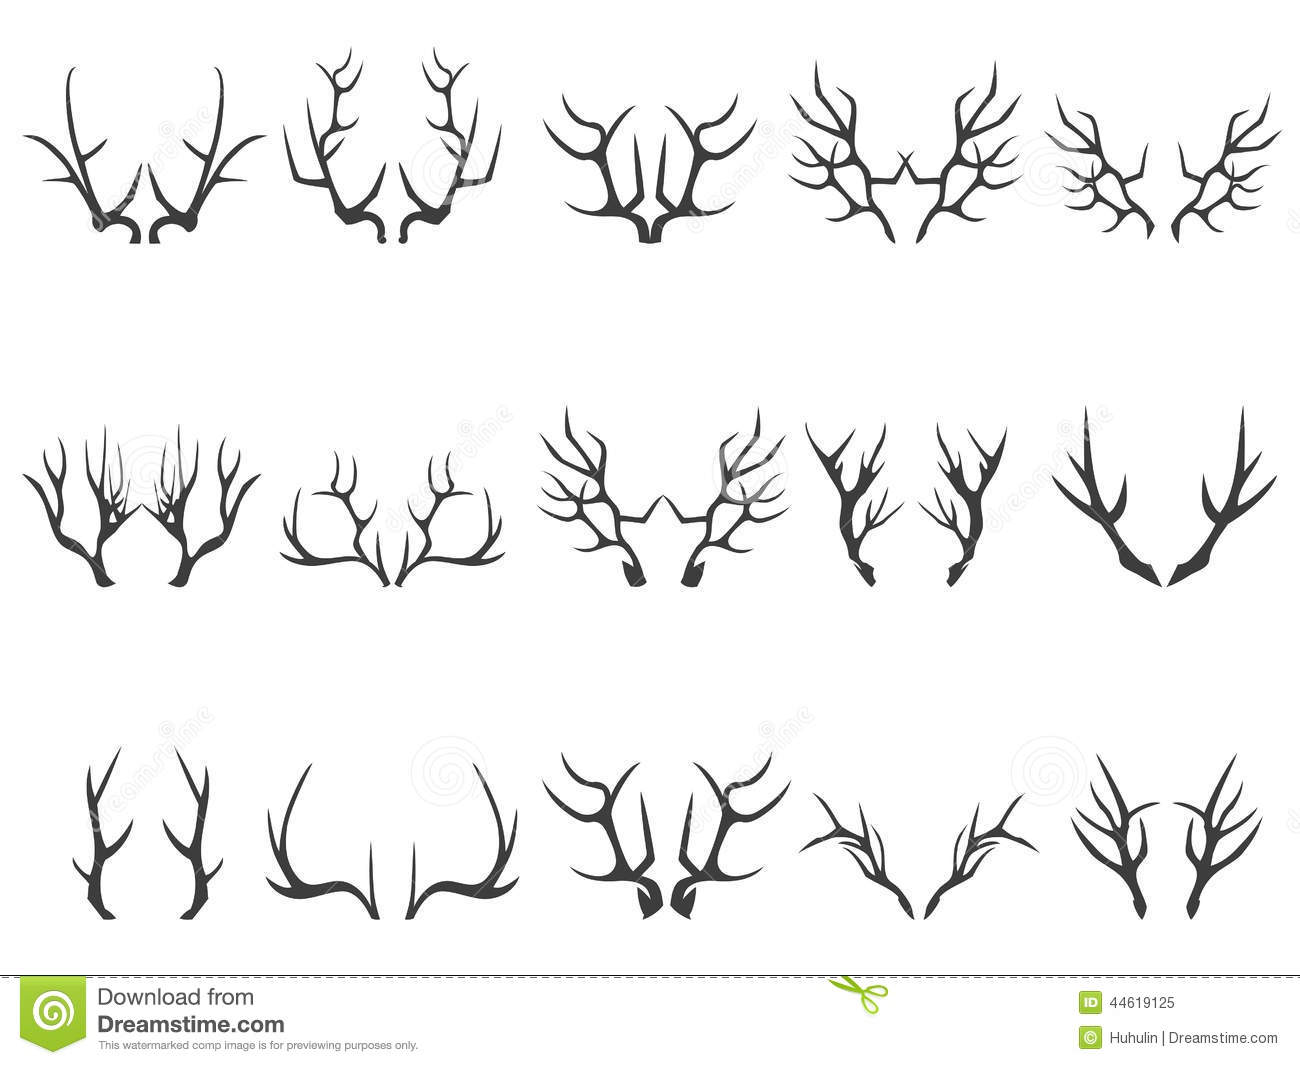 Deer Horns Cartoon Vector Cartoondealer Com 2650859